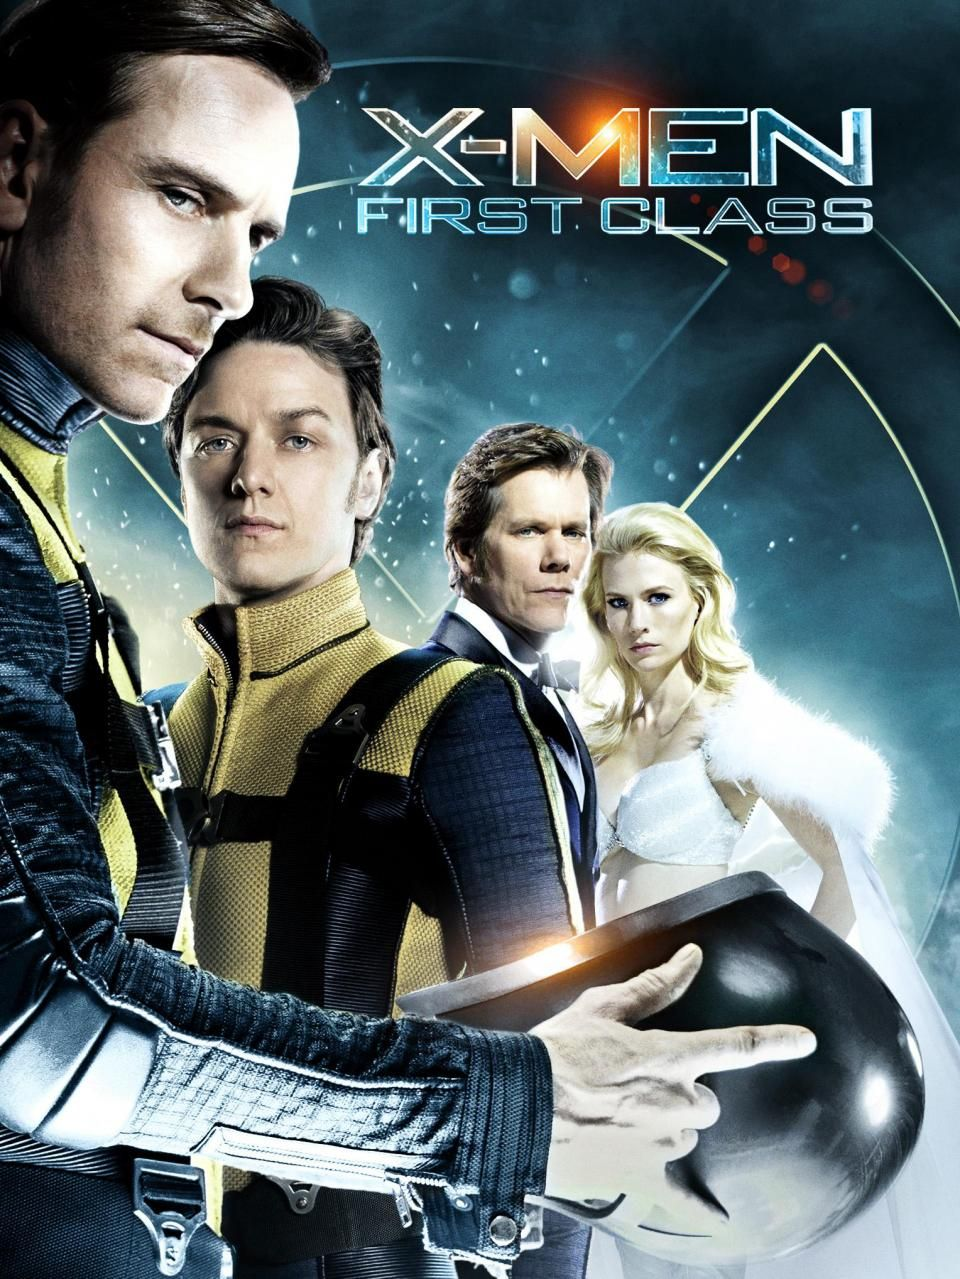 X Men First Class 2011 X Men Marvel Movies Man Movies